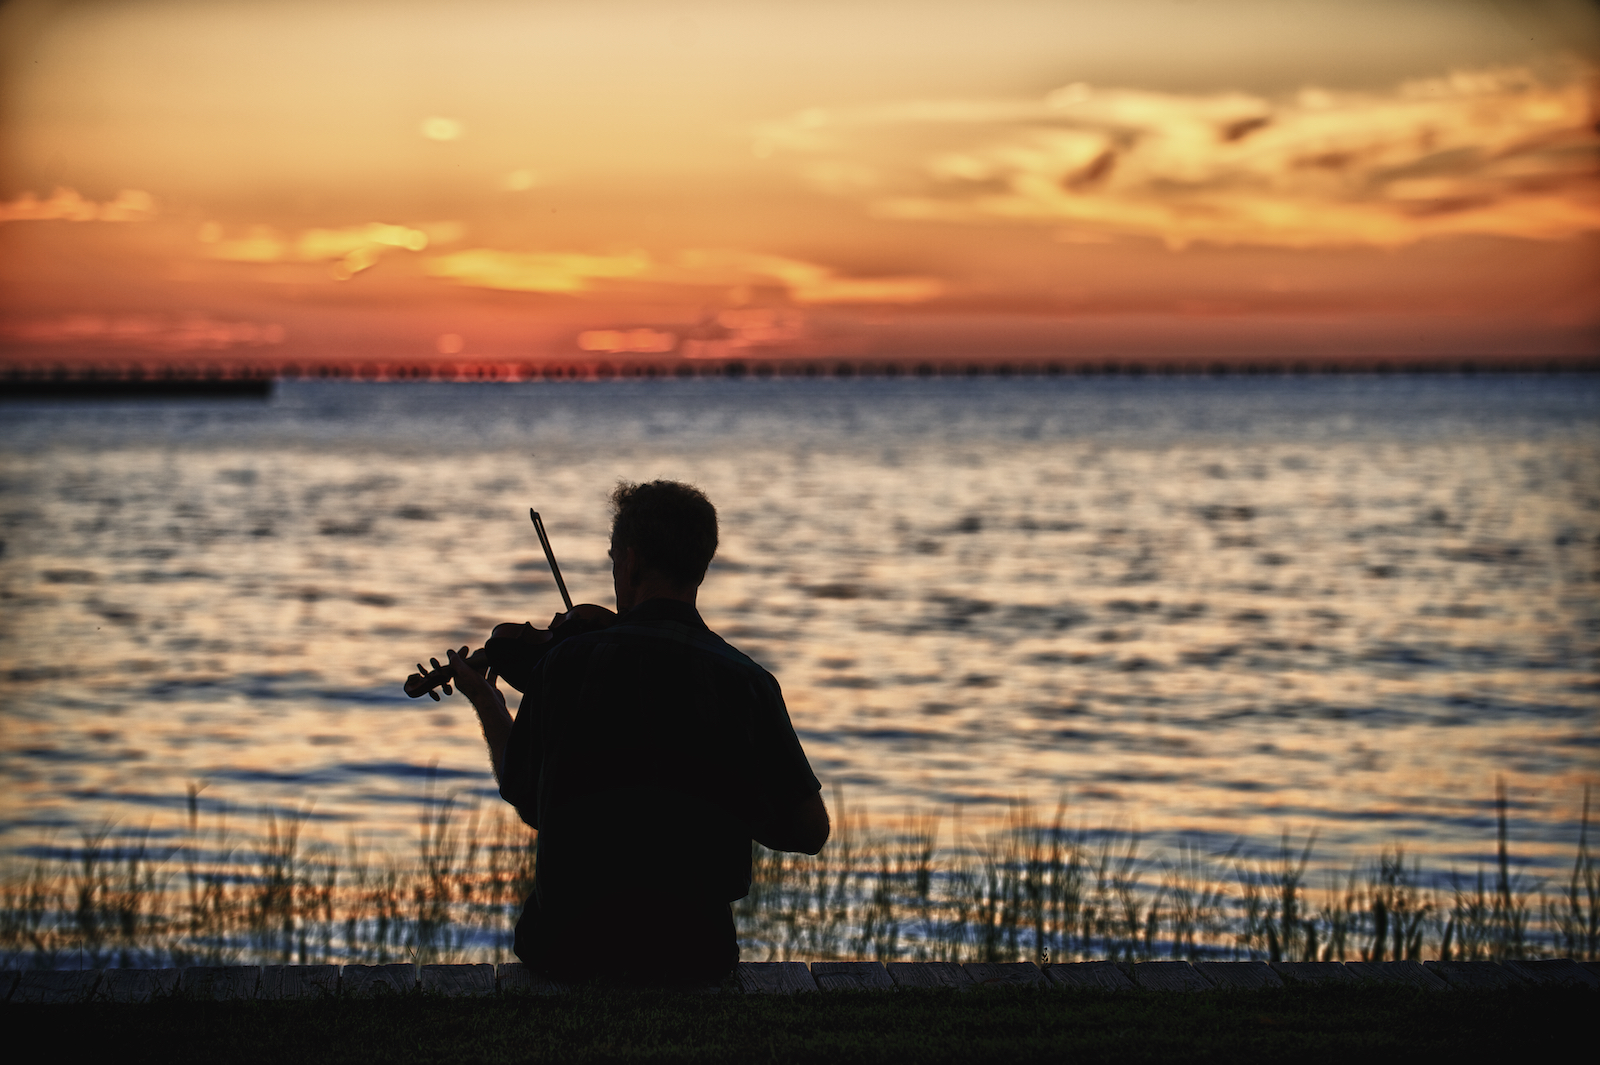 A mand plays fiddle on the north shore of Lake Pontchartrain in Louisiana.  Image by New Orleans based travel photographer, Marc Pagani